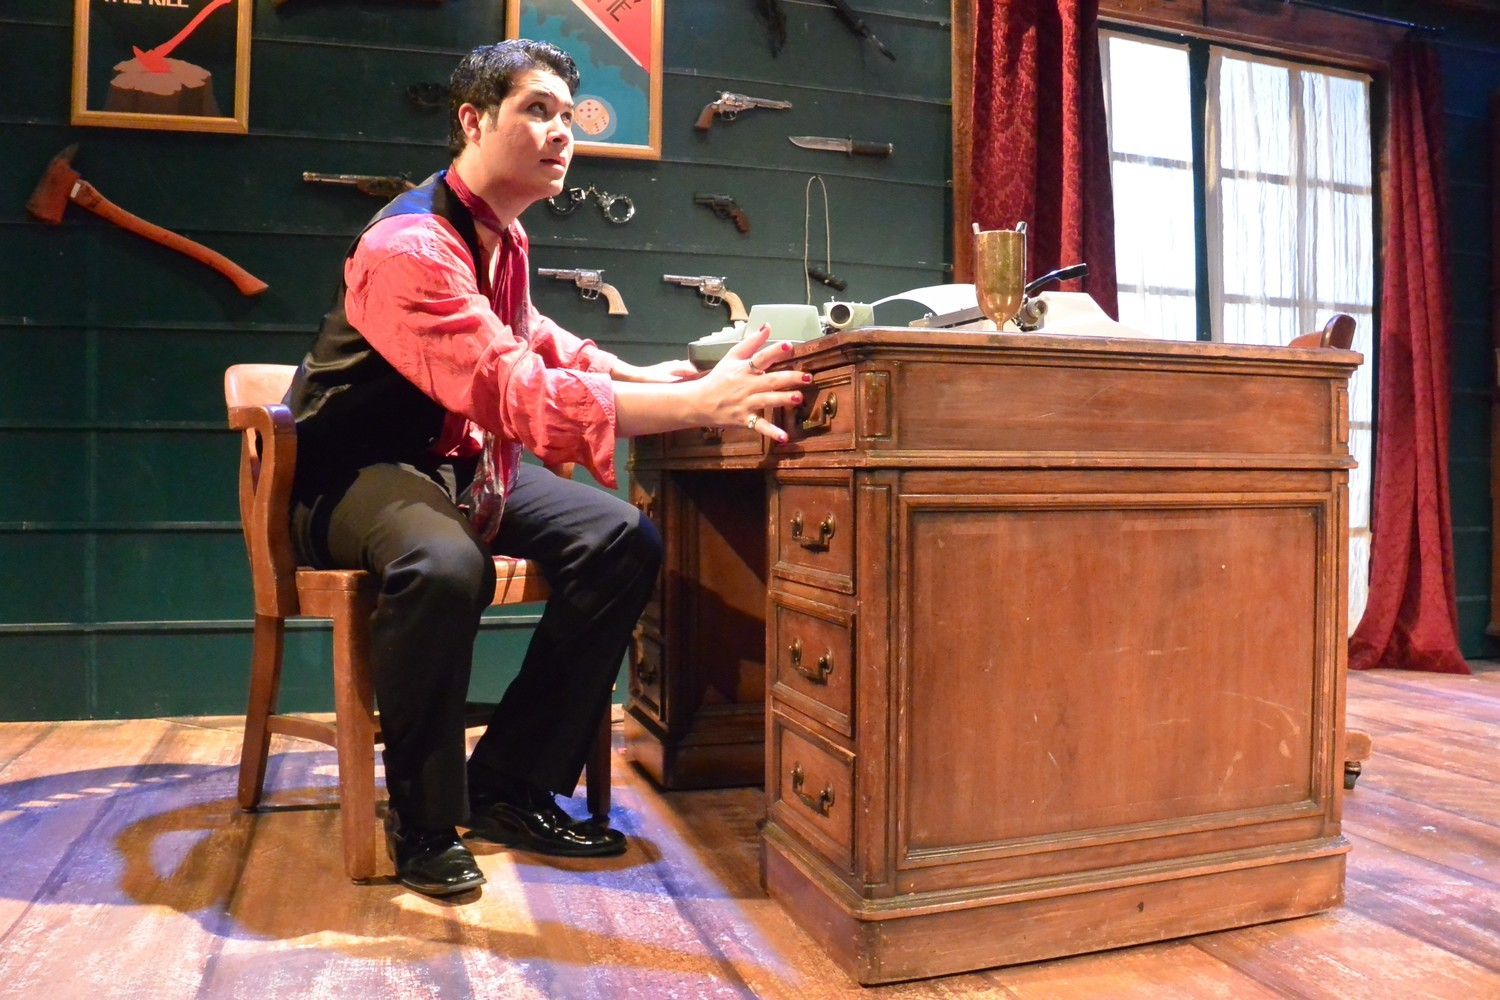 BWW Review: DEATHTRAP at Princeton Summer Theater Surprises